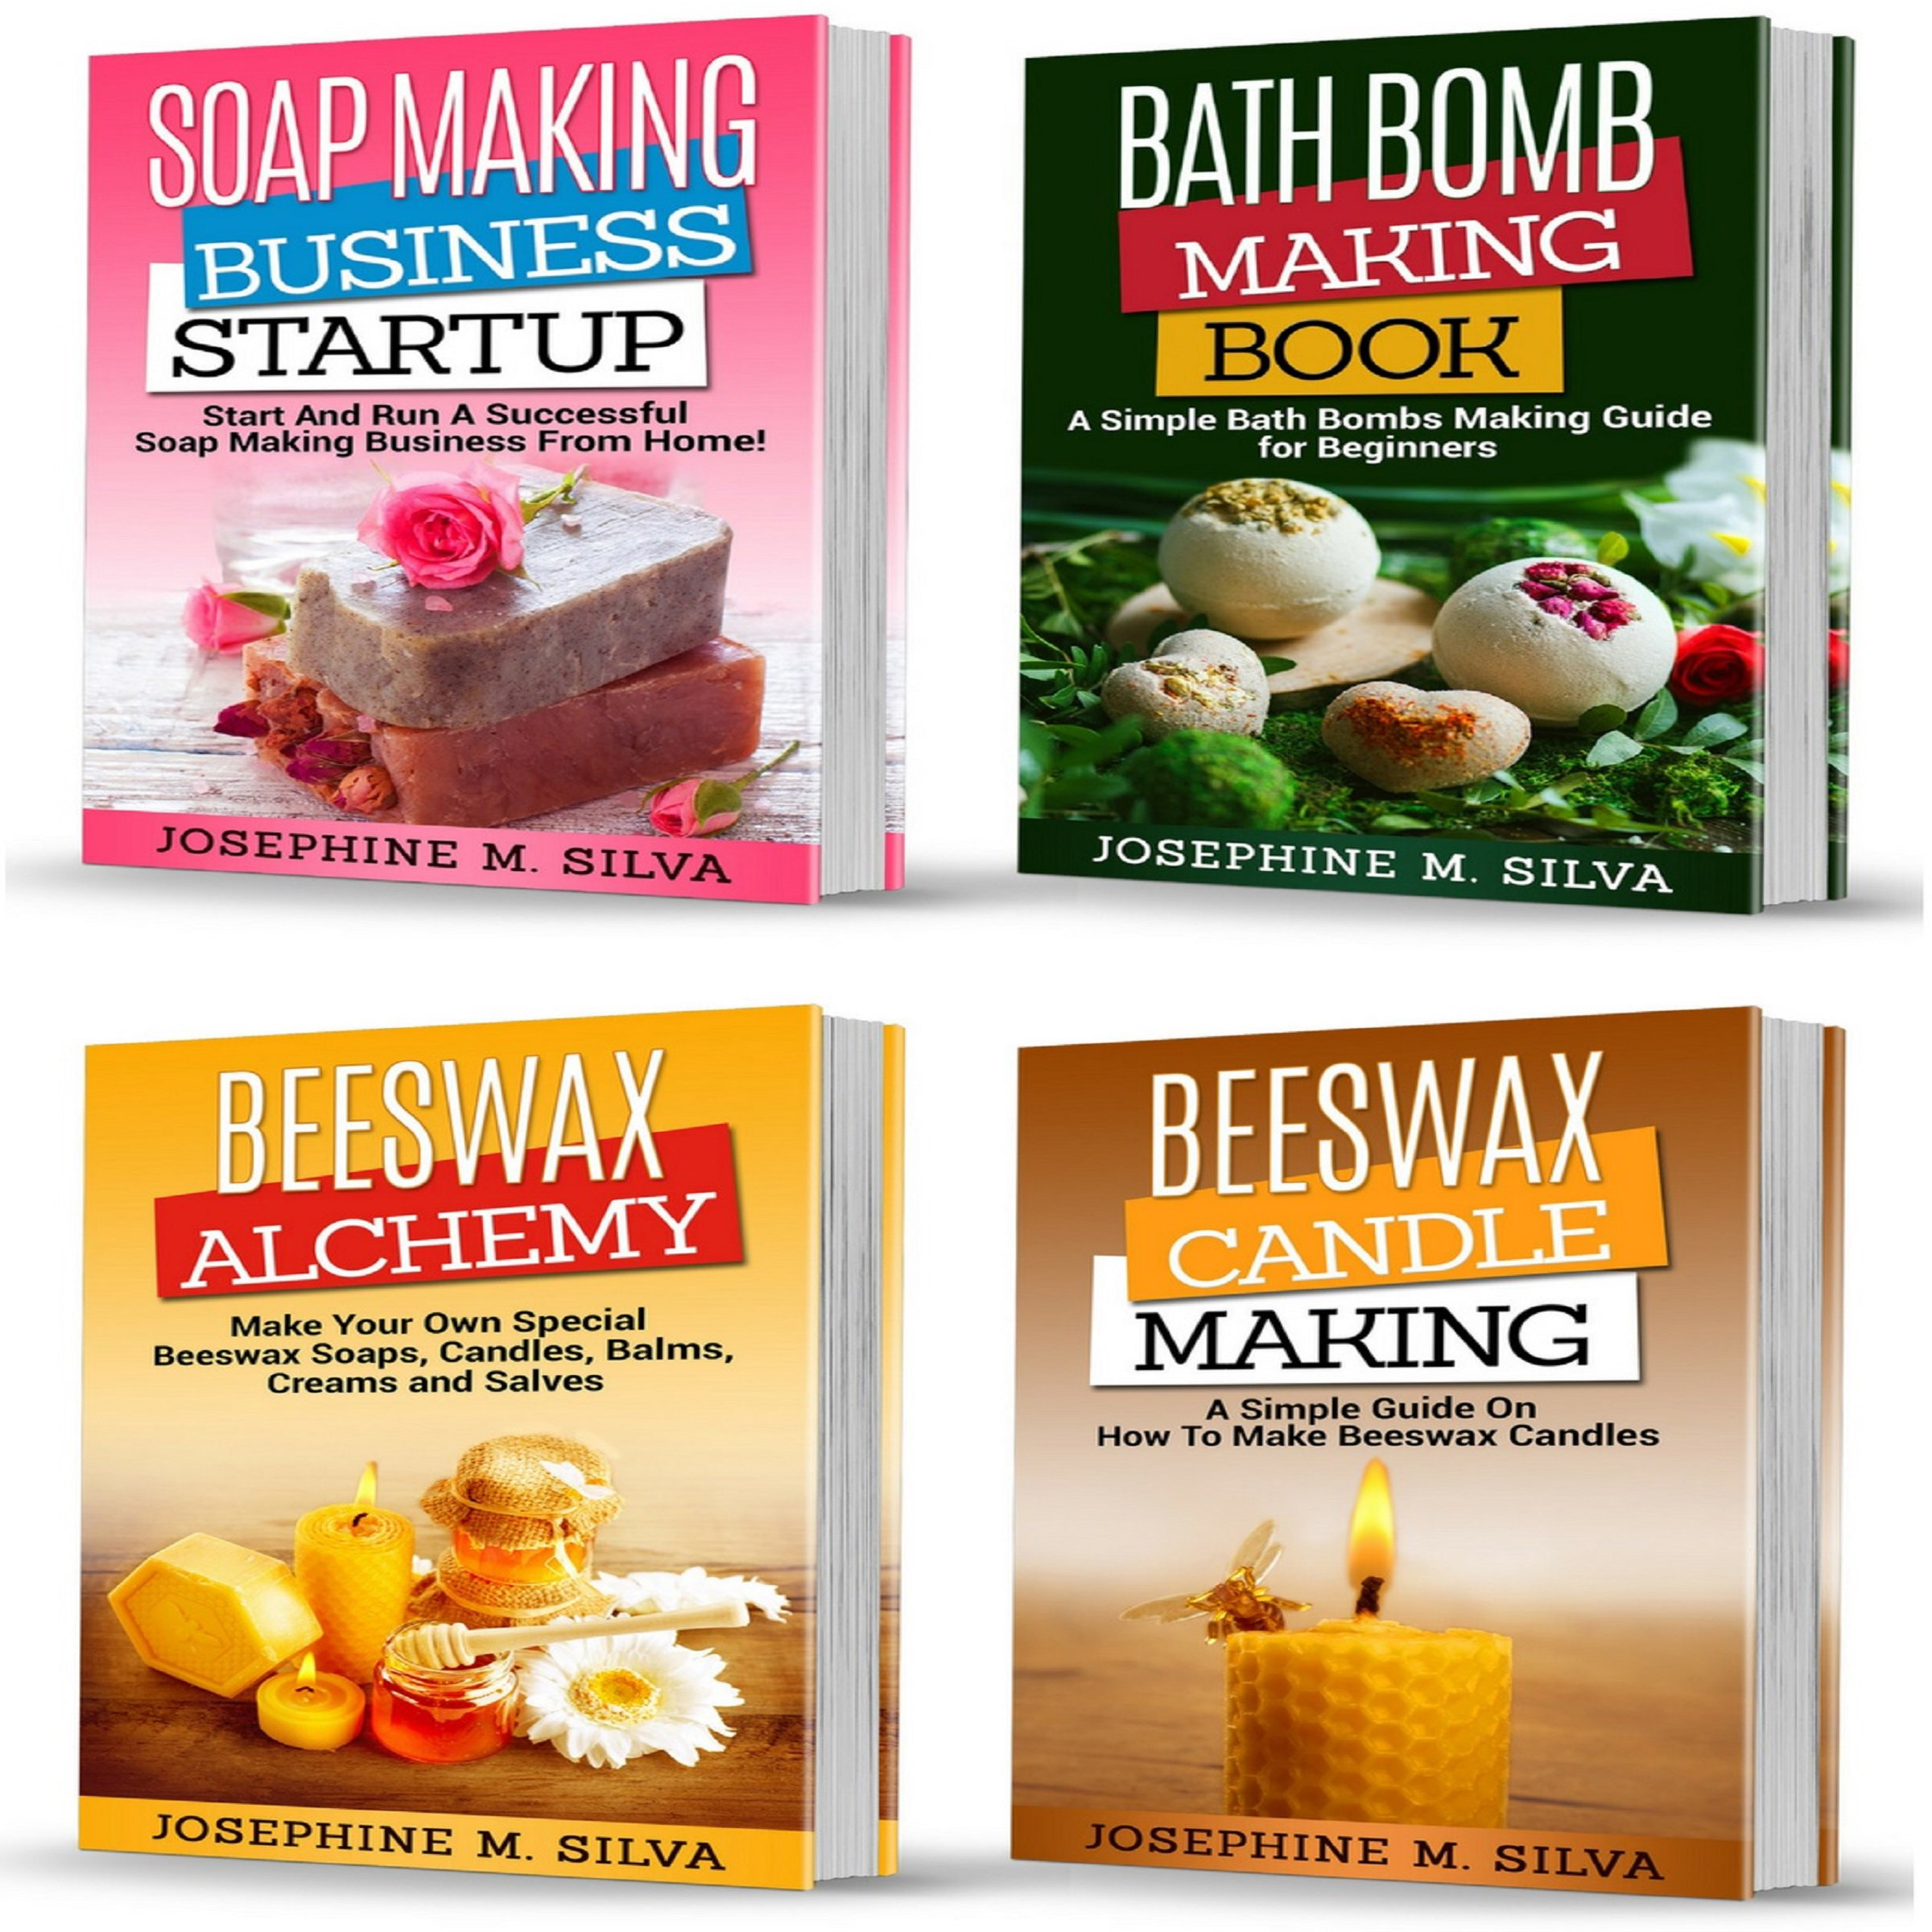 Homemade Projects: 4 Manuscripts: Soap Making Business Startup, Bath Bomb Making Book, Beeswax Alchemy and Beeswax Candle Making